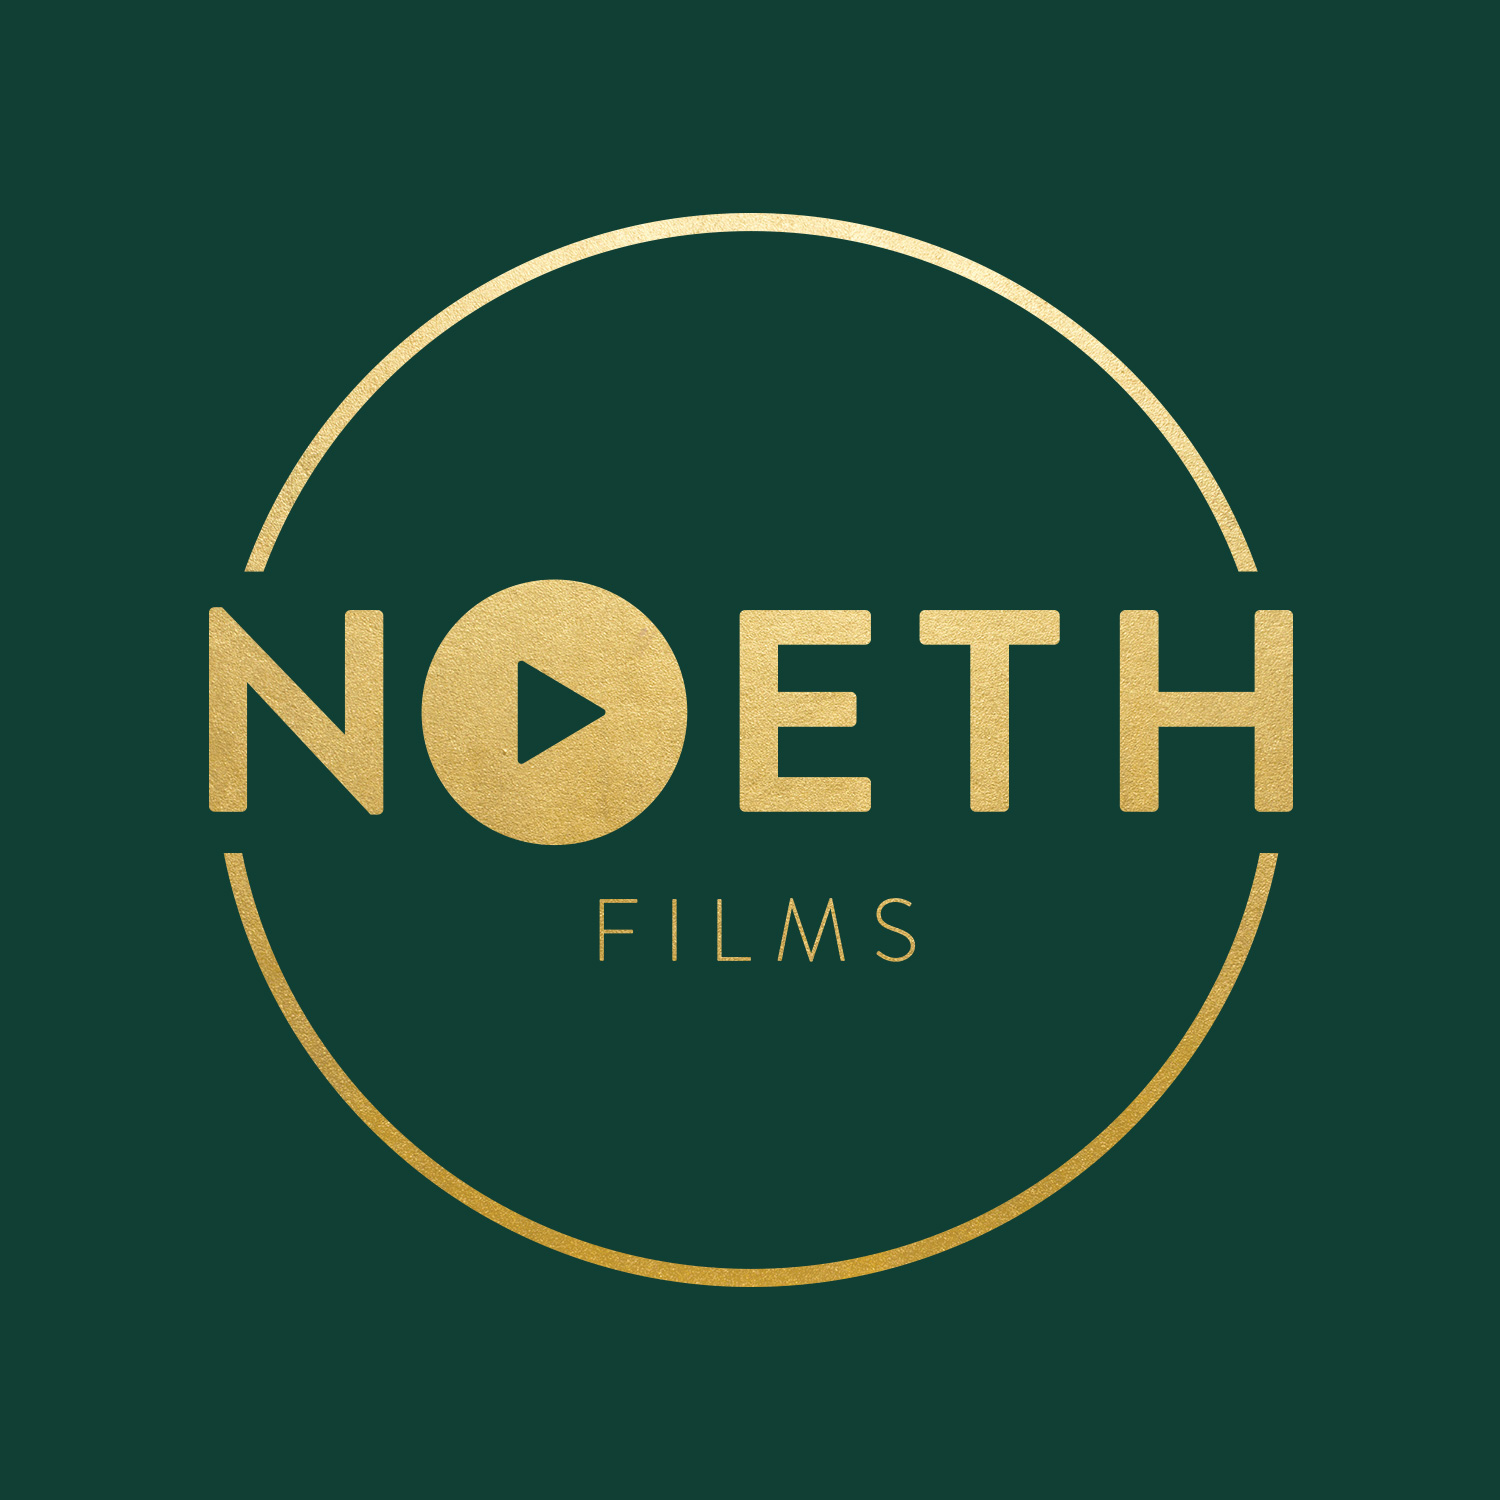 Noeth Films Logo-Green-01.jpg